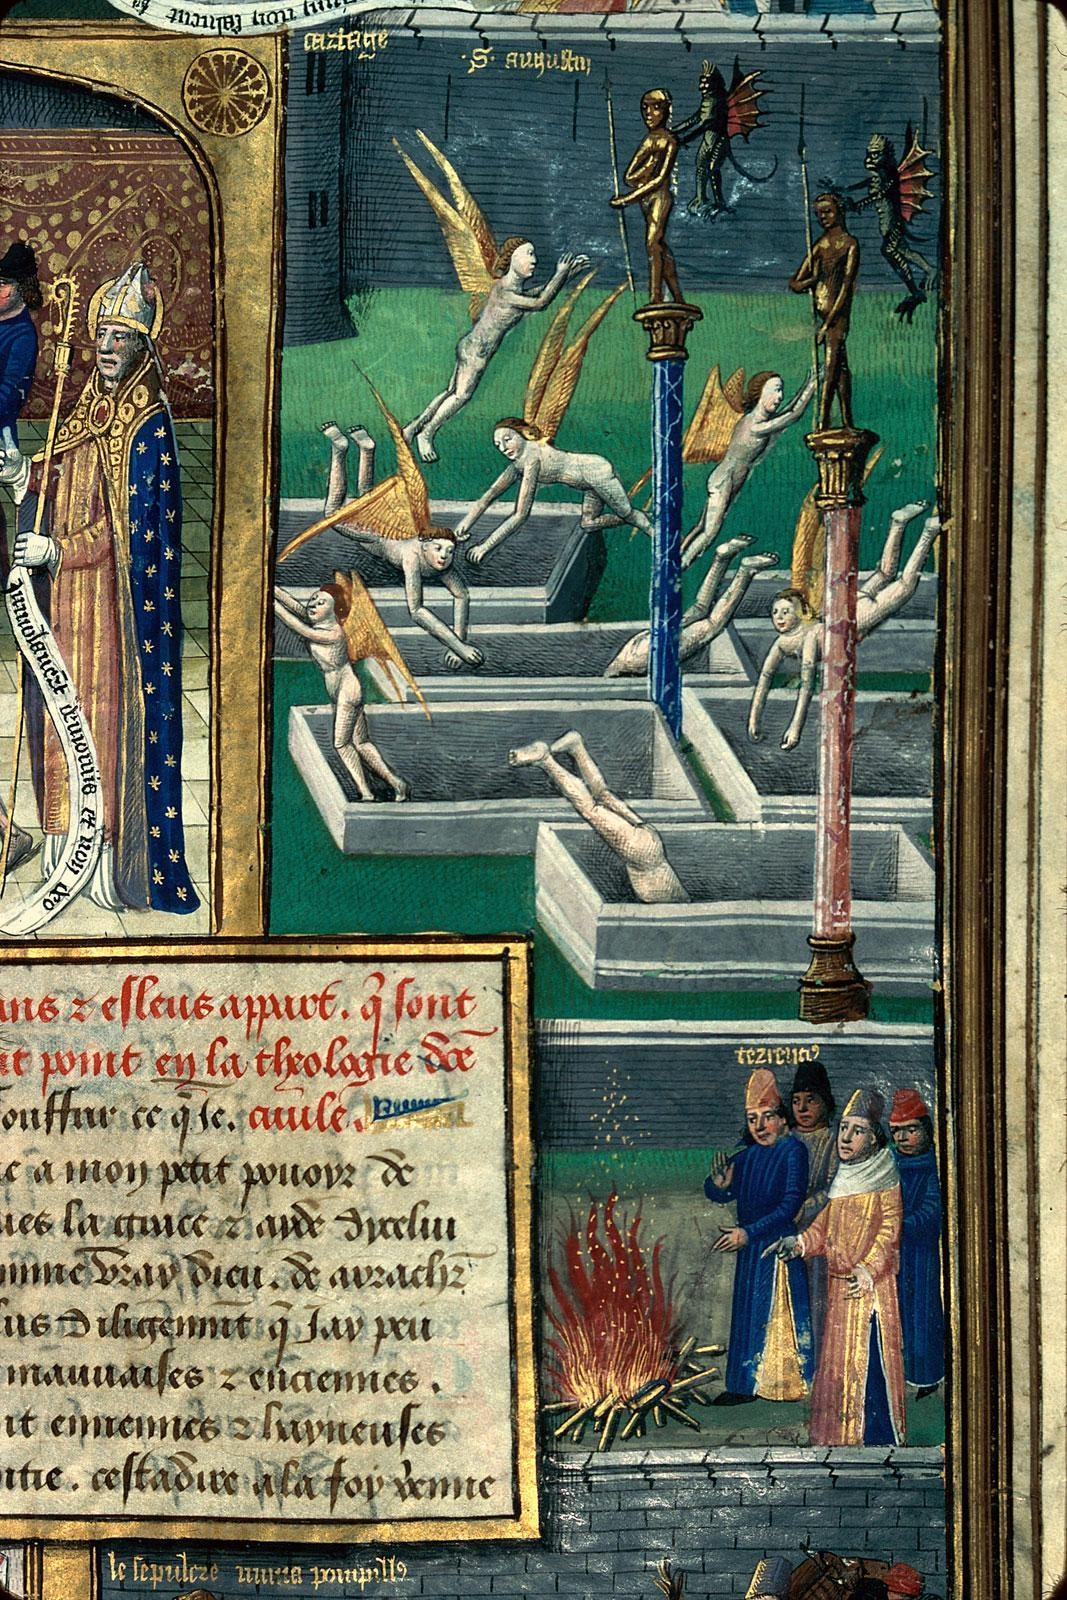 demonagerie:  Mâcon - BM - ms. 0001, detail of f. 231. St. Augustine, La Cité de Dieu. Paris, c.1480.